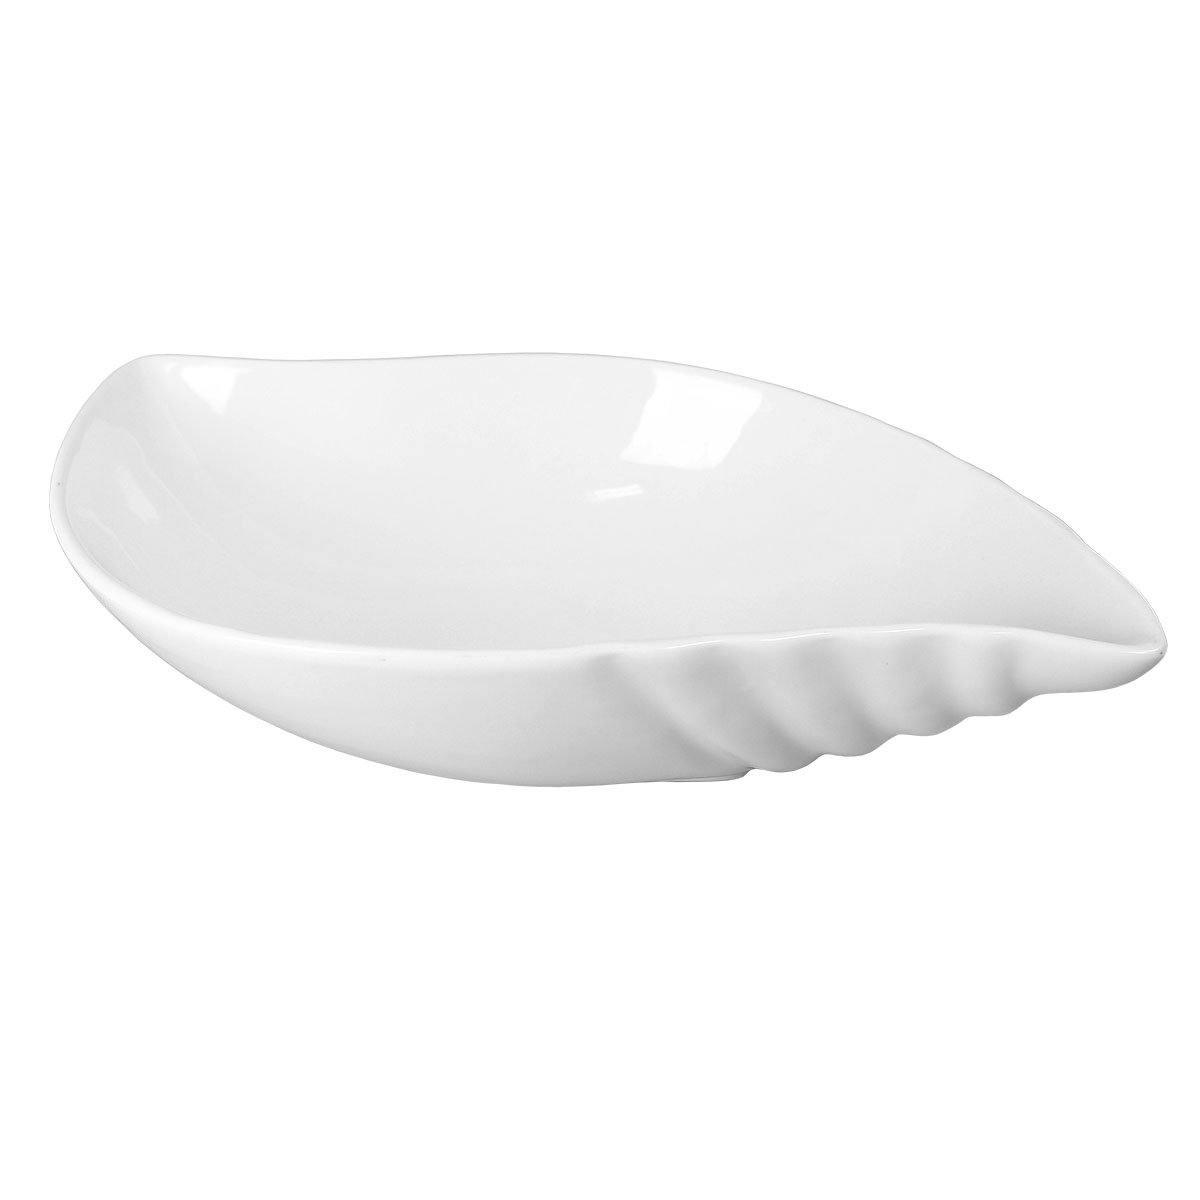 Shell Bowl 1 1/2qt